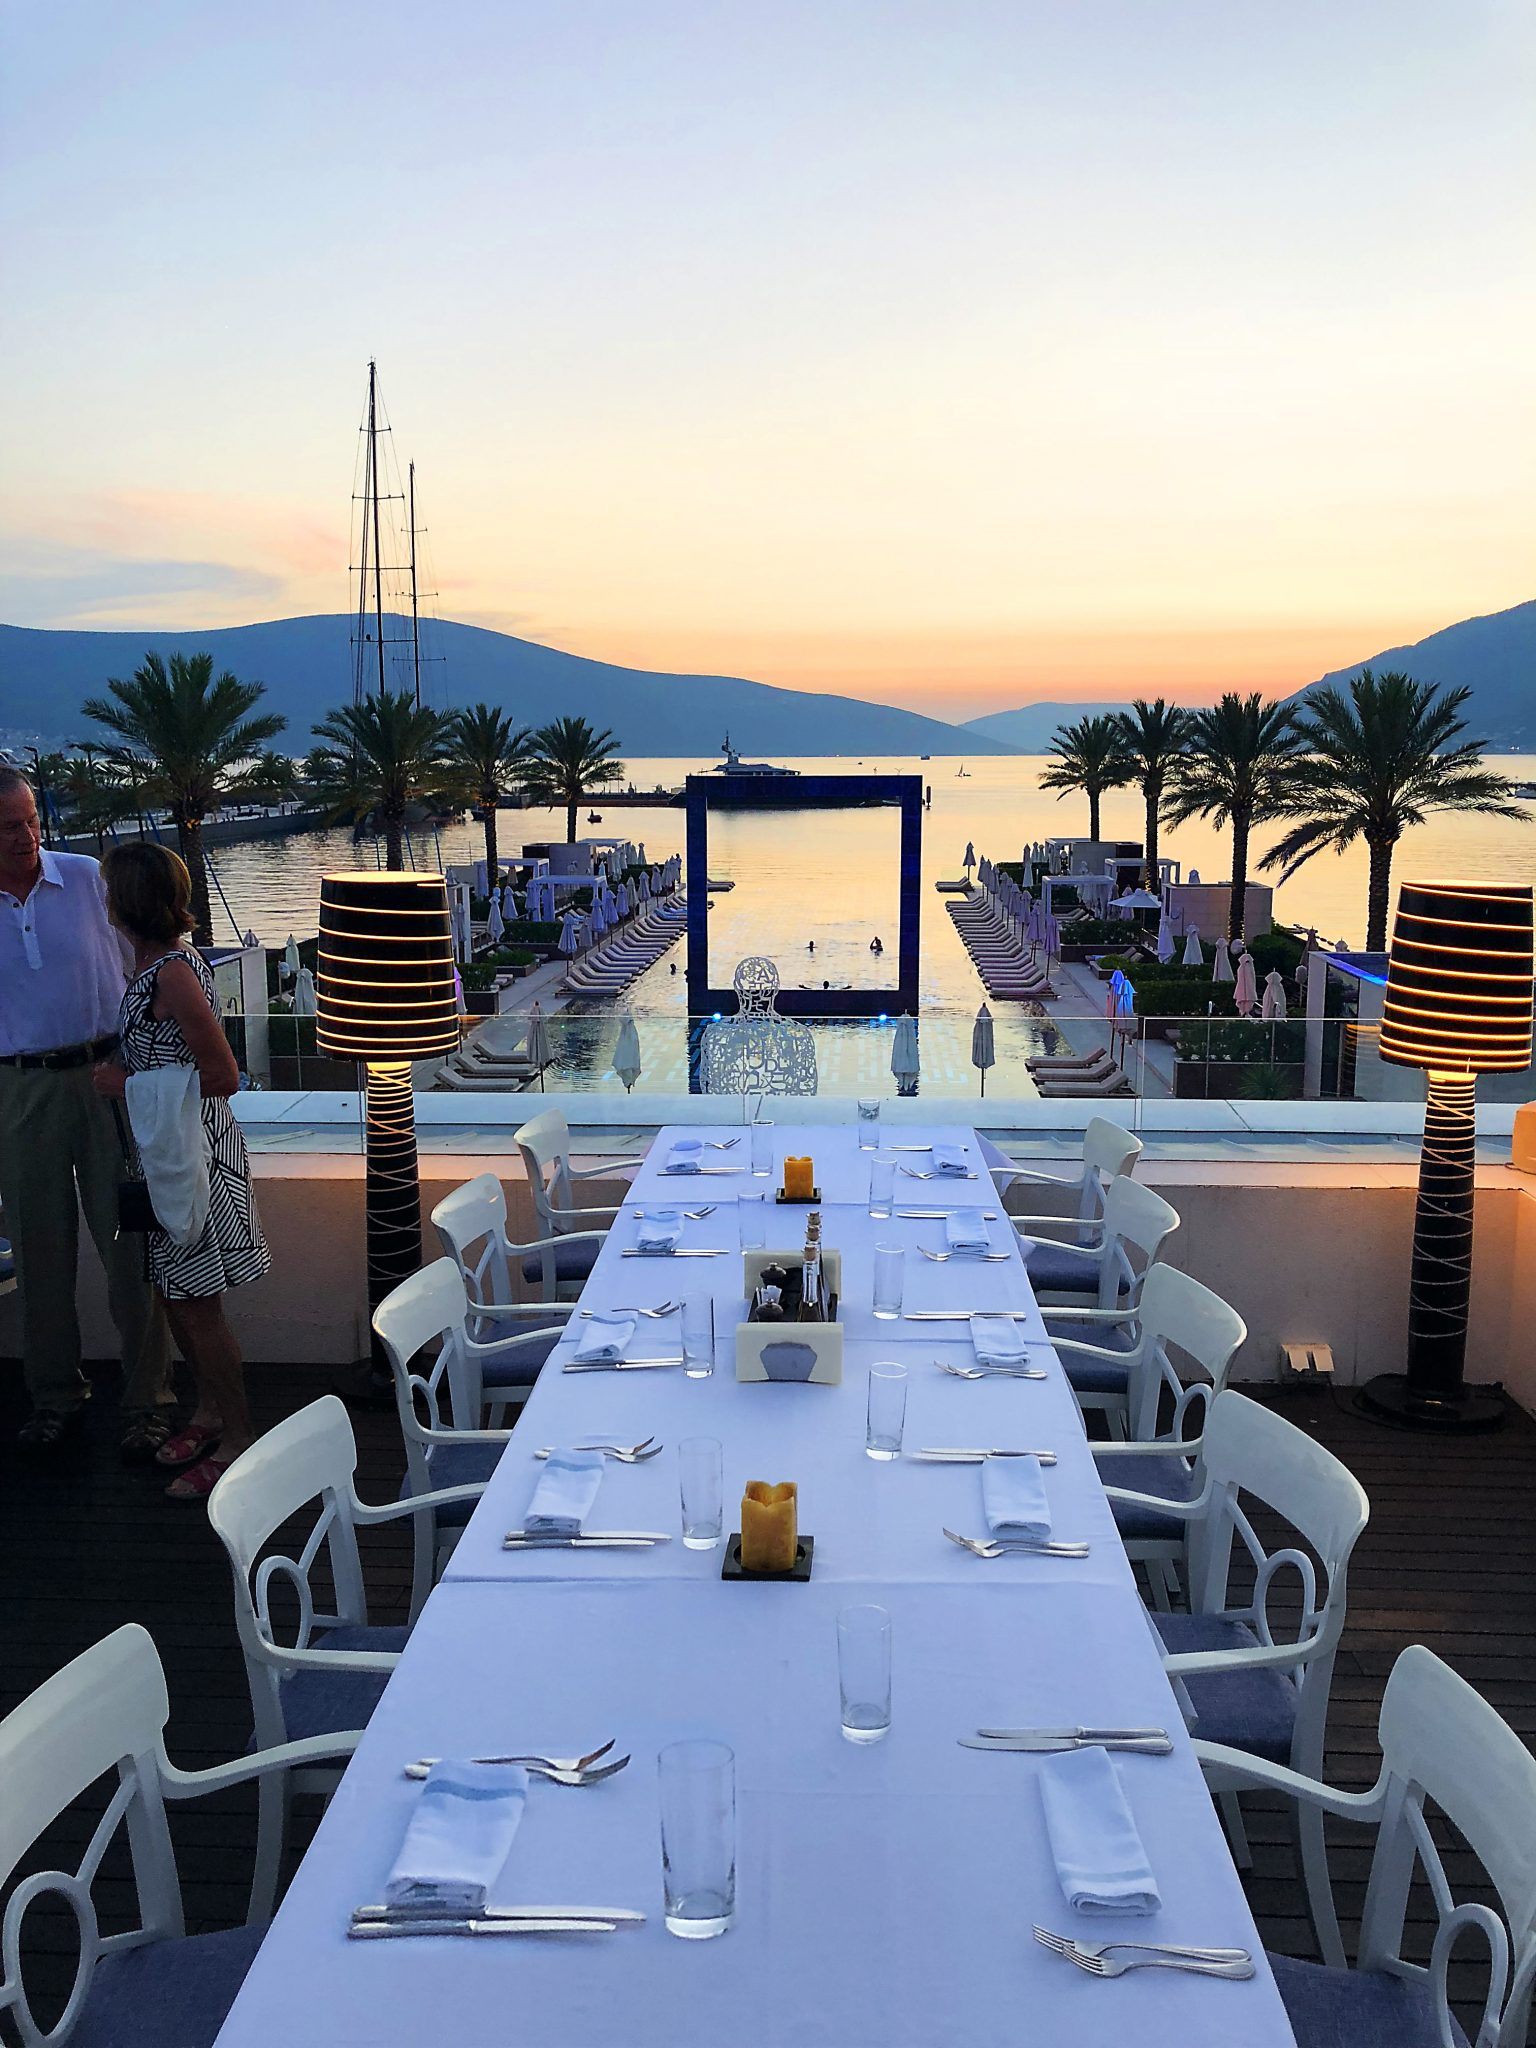 table setting for eight on long table in front of harbor scape with mountains and sunset behind